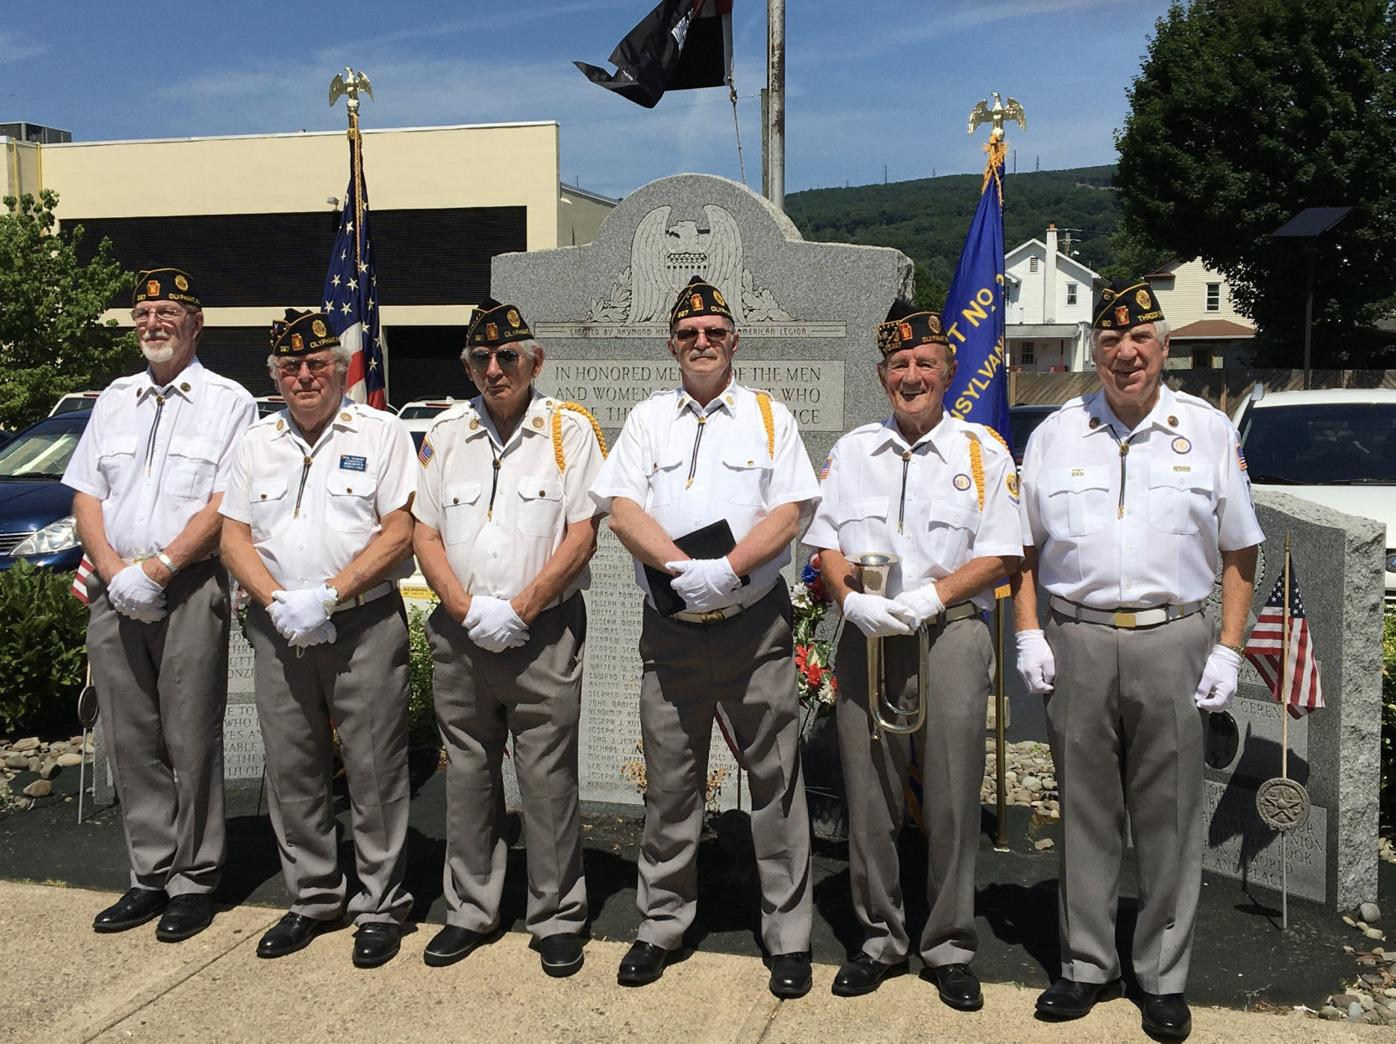 The Olyphant American Legion Post 327, attended the rededication of the Hometown Banner and officiated at the Funeral Detail for the late Veteran John Komar, who died in 1987. From left, Vince Narcoonis, Paul Yakamovitch Steve Gaglio, Ed London, Steve Grassetti and Peter Puhalla.